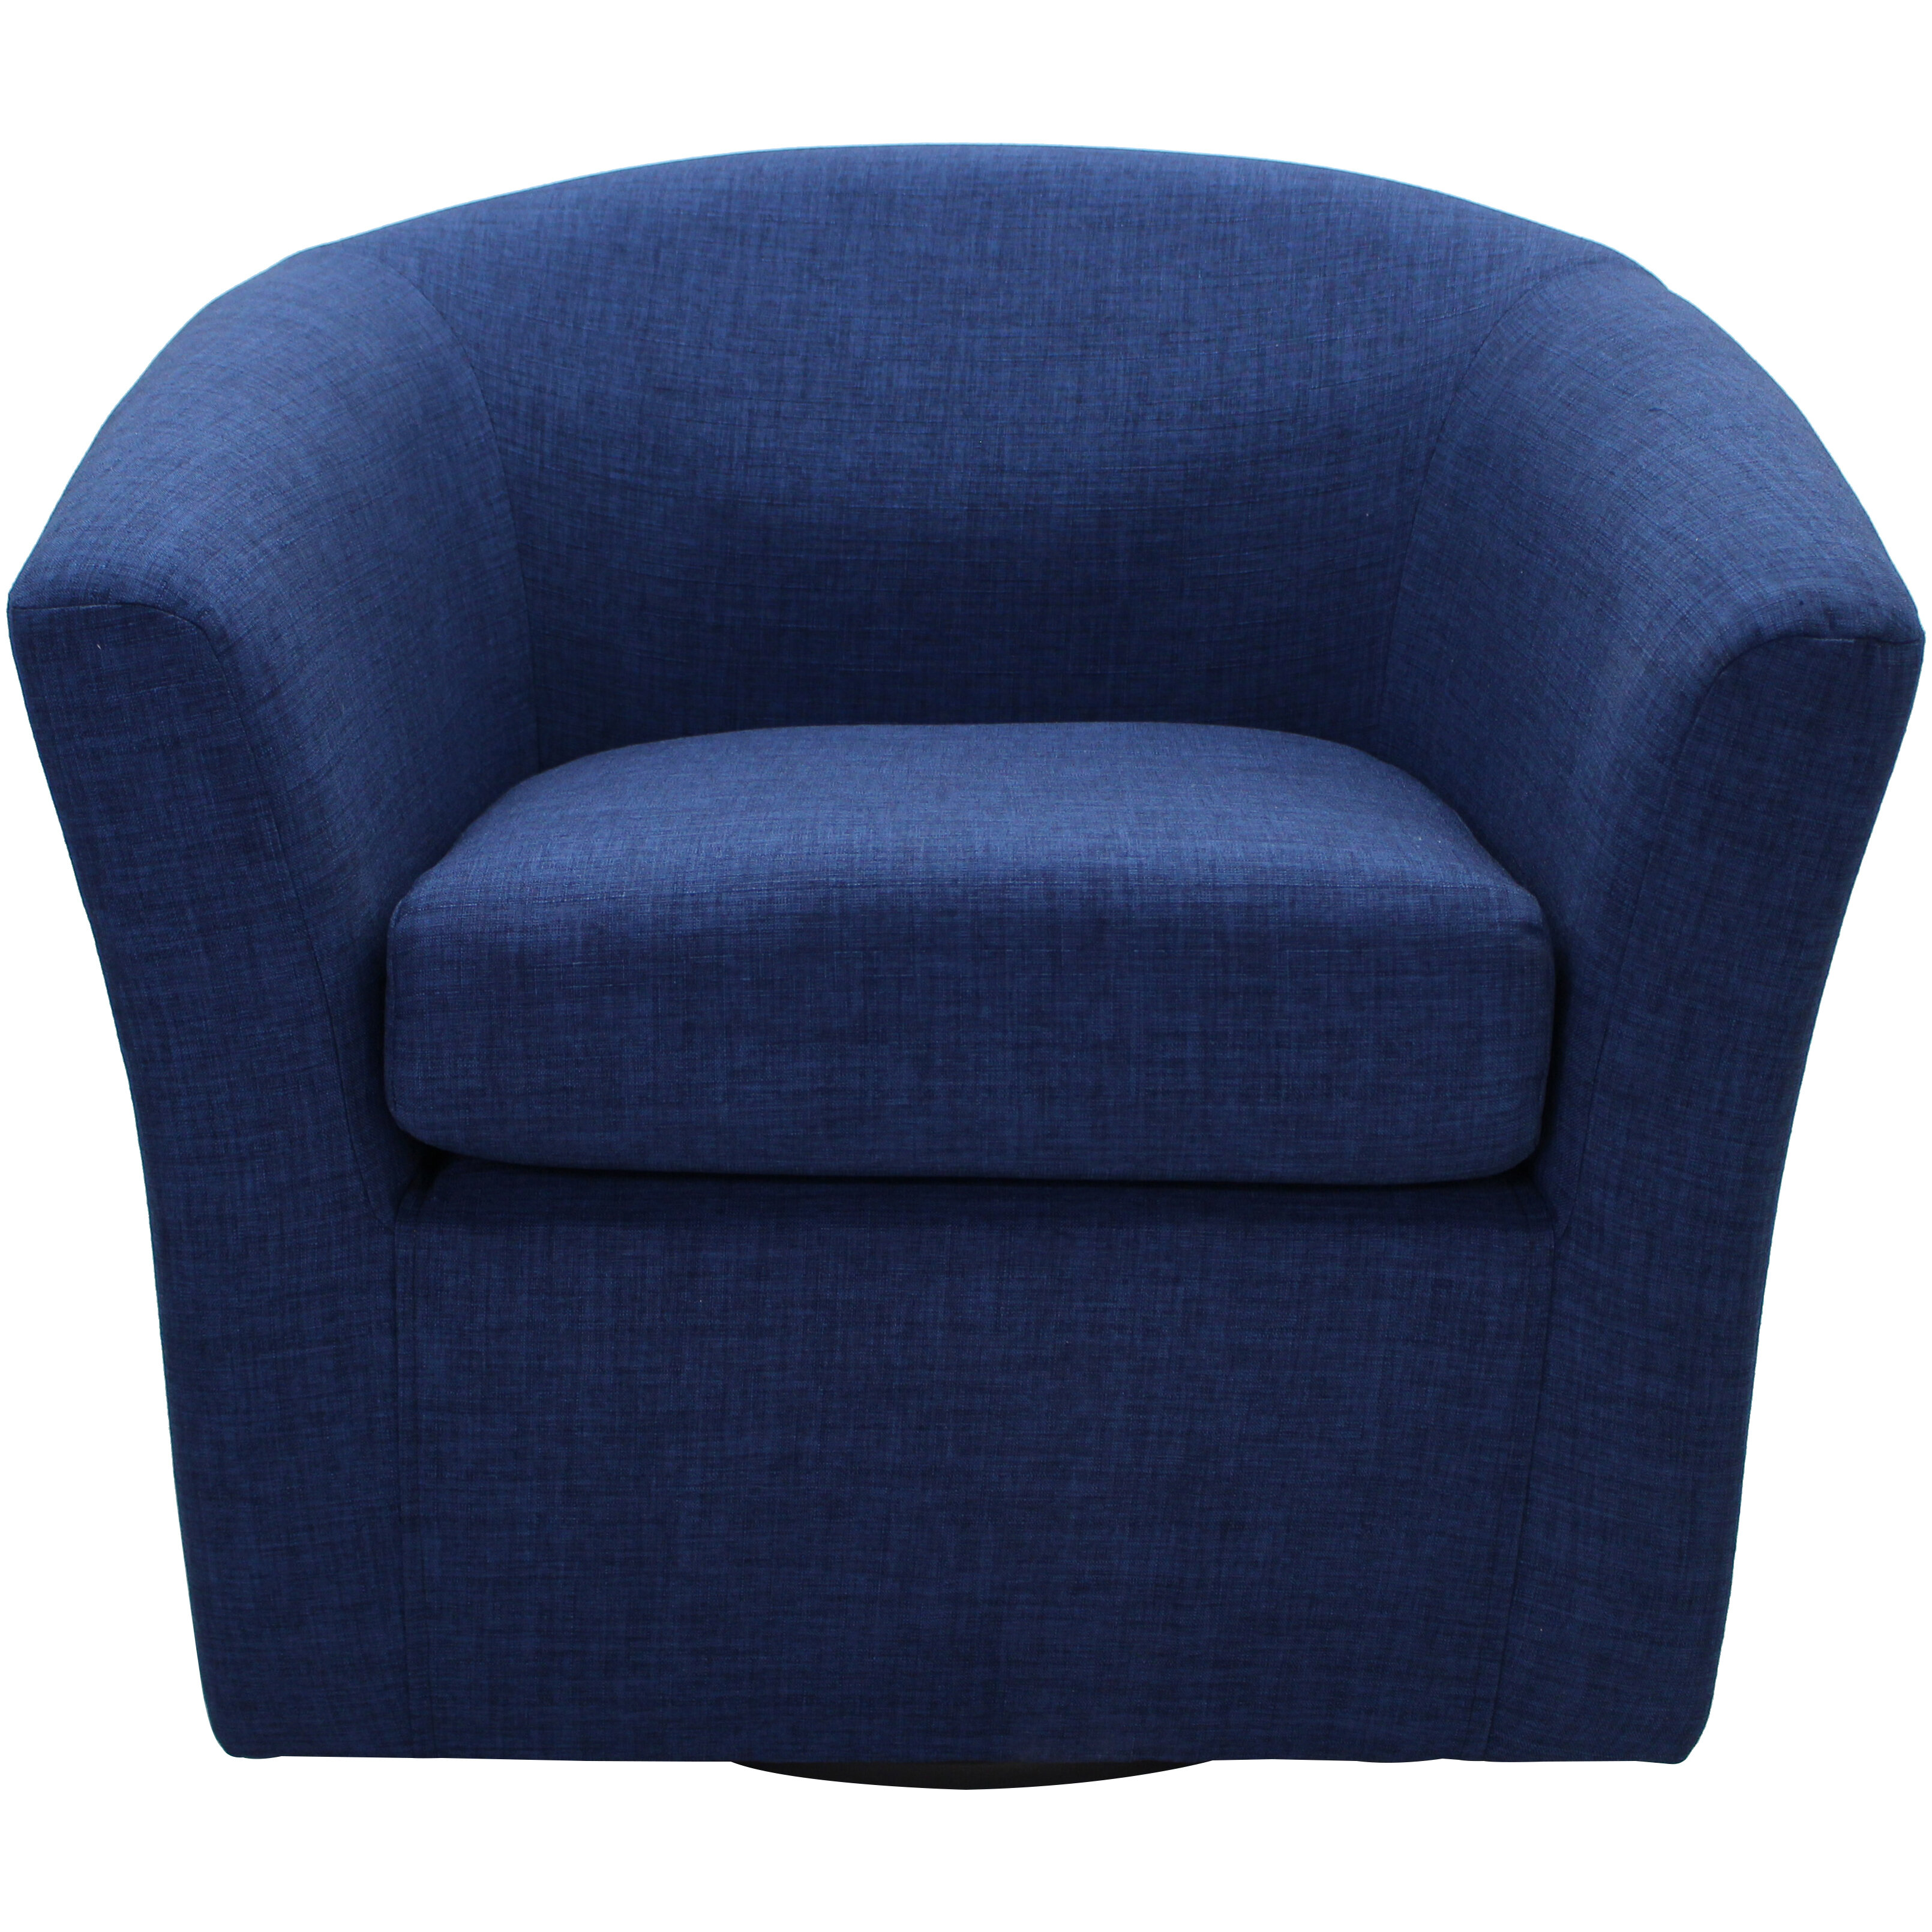 best item swivel elaine cinder chairs number chair products barrel rotmans home furnishings